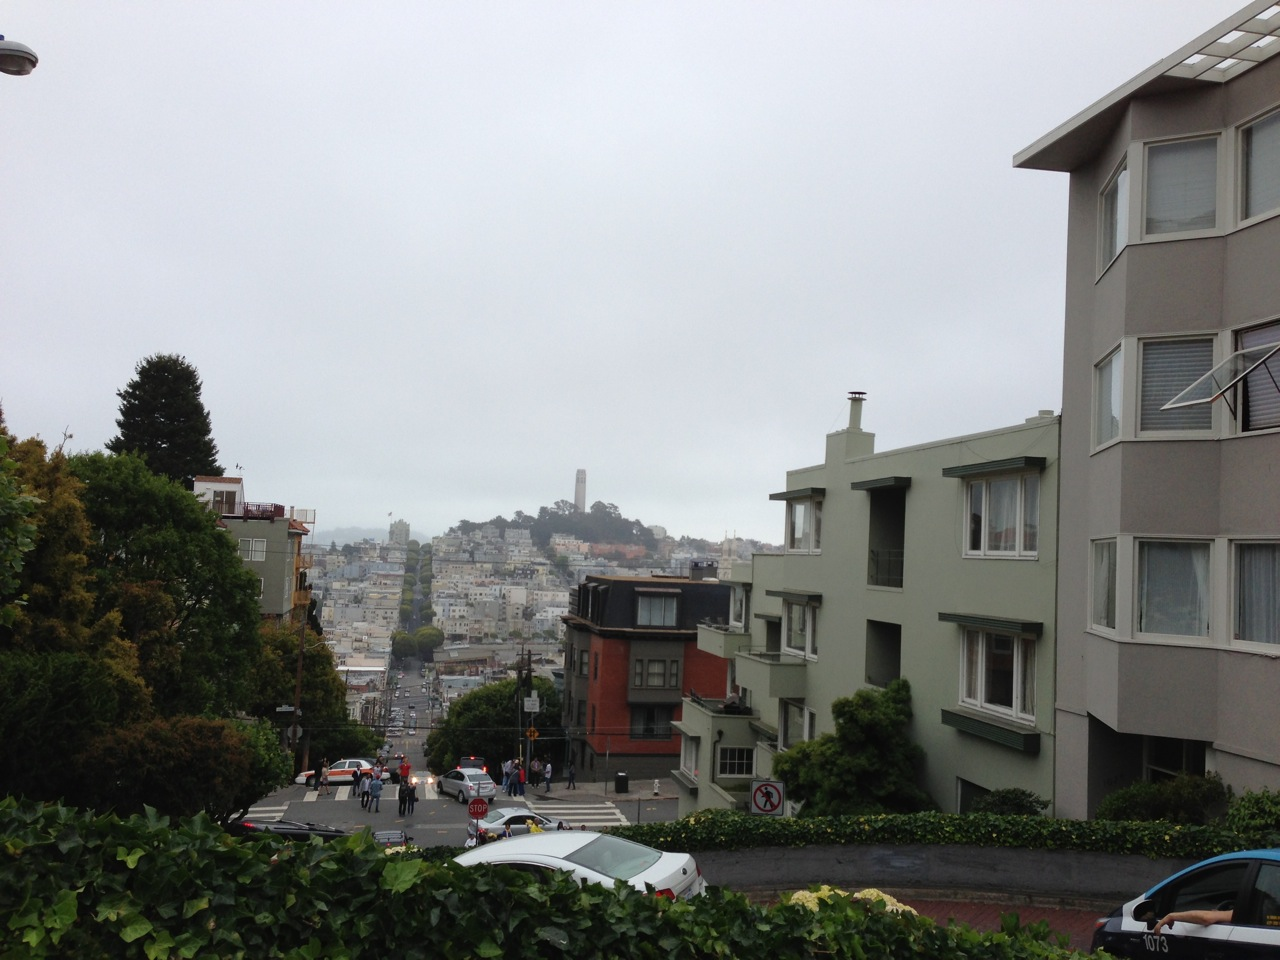 Heading down Lombard St.